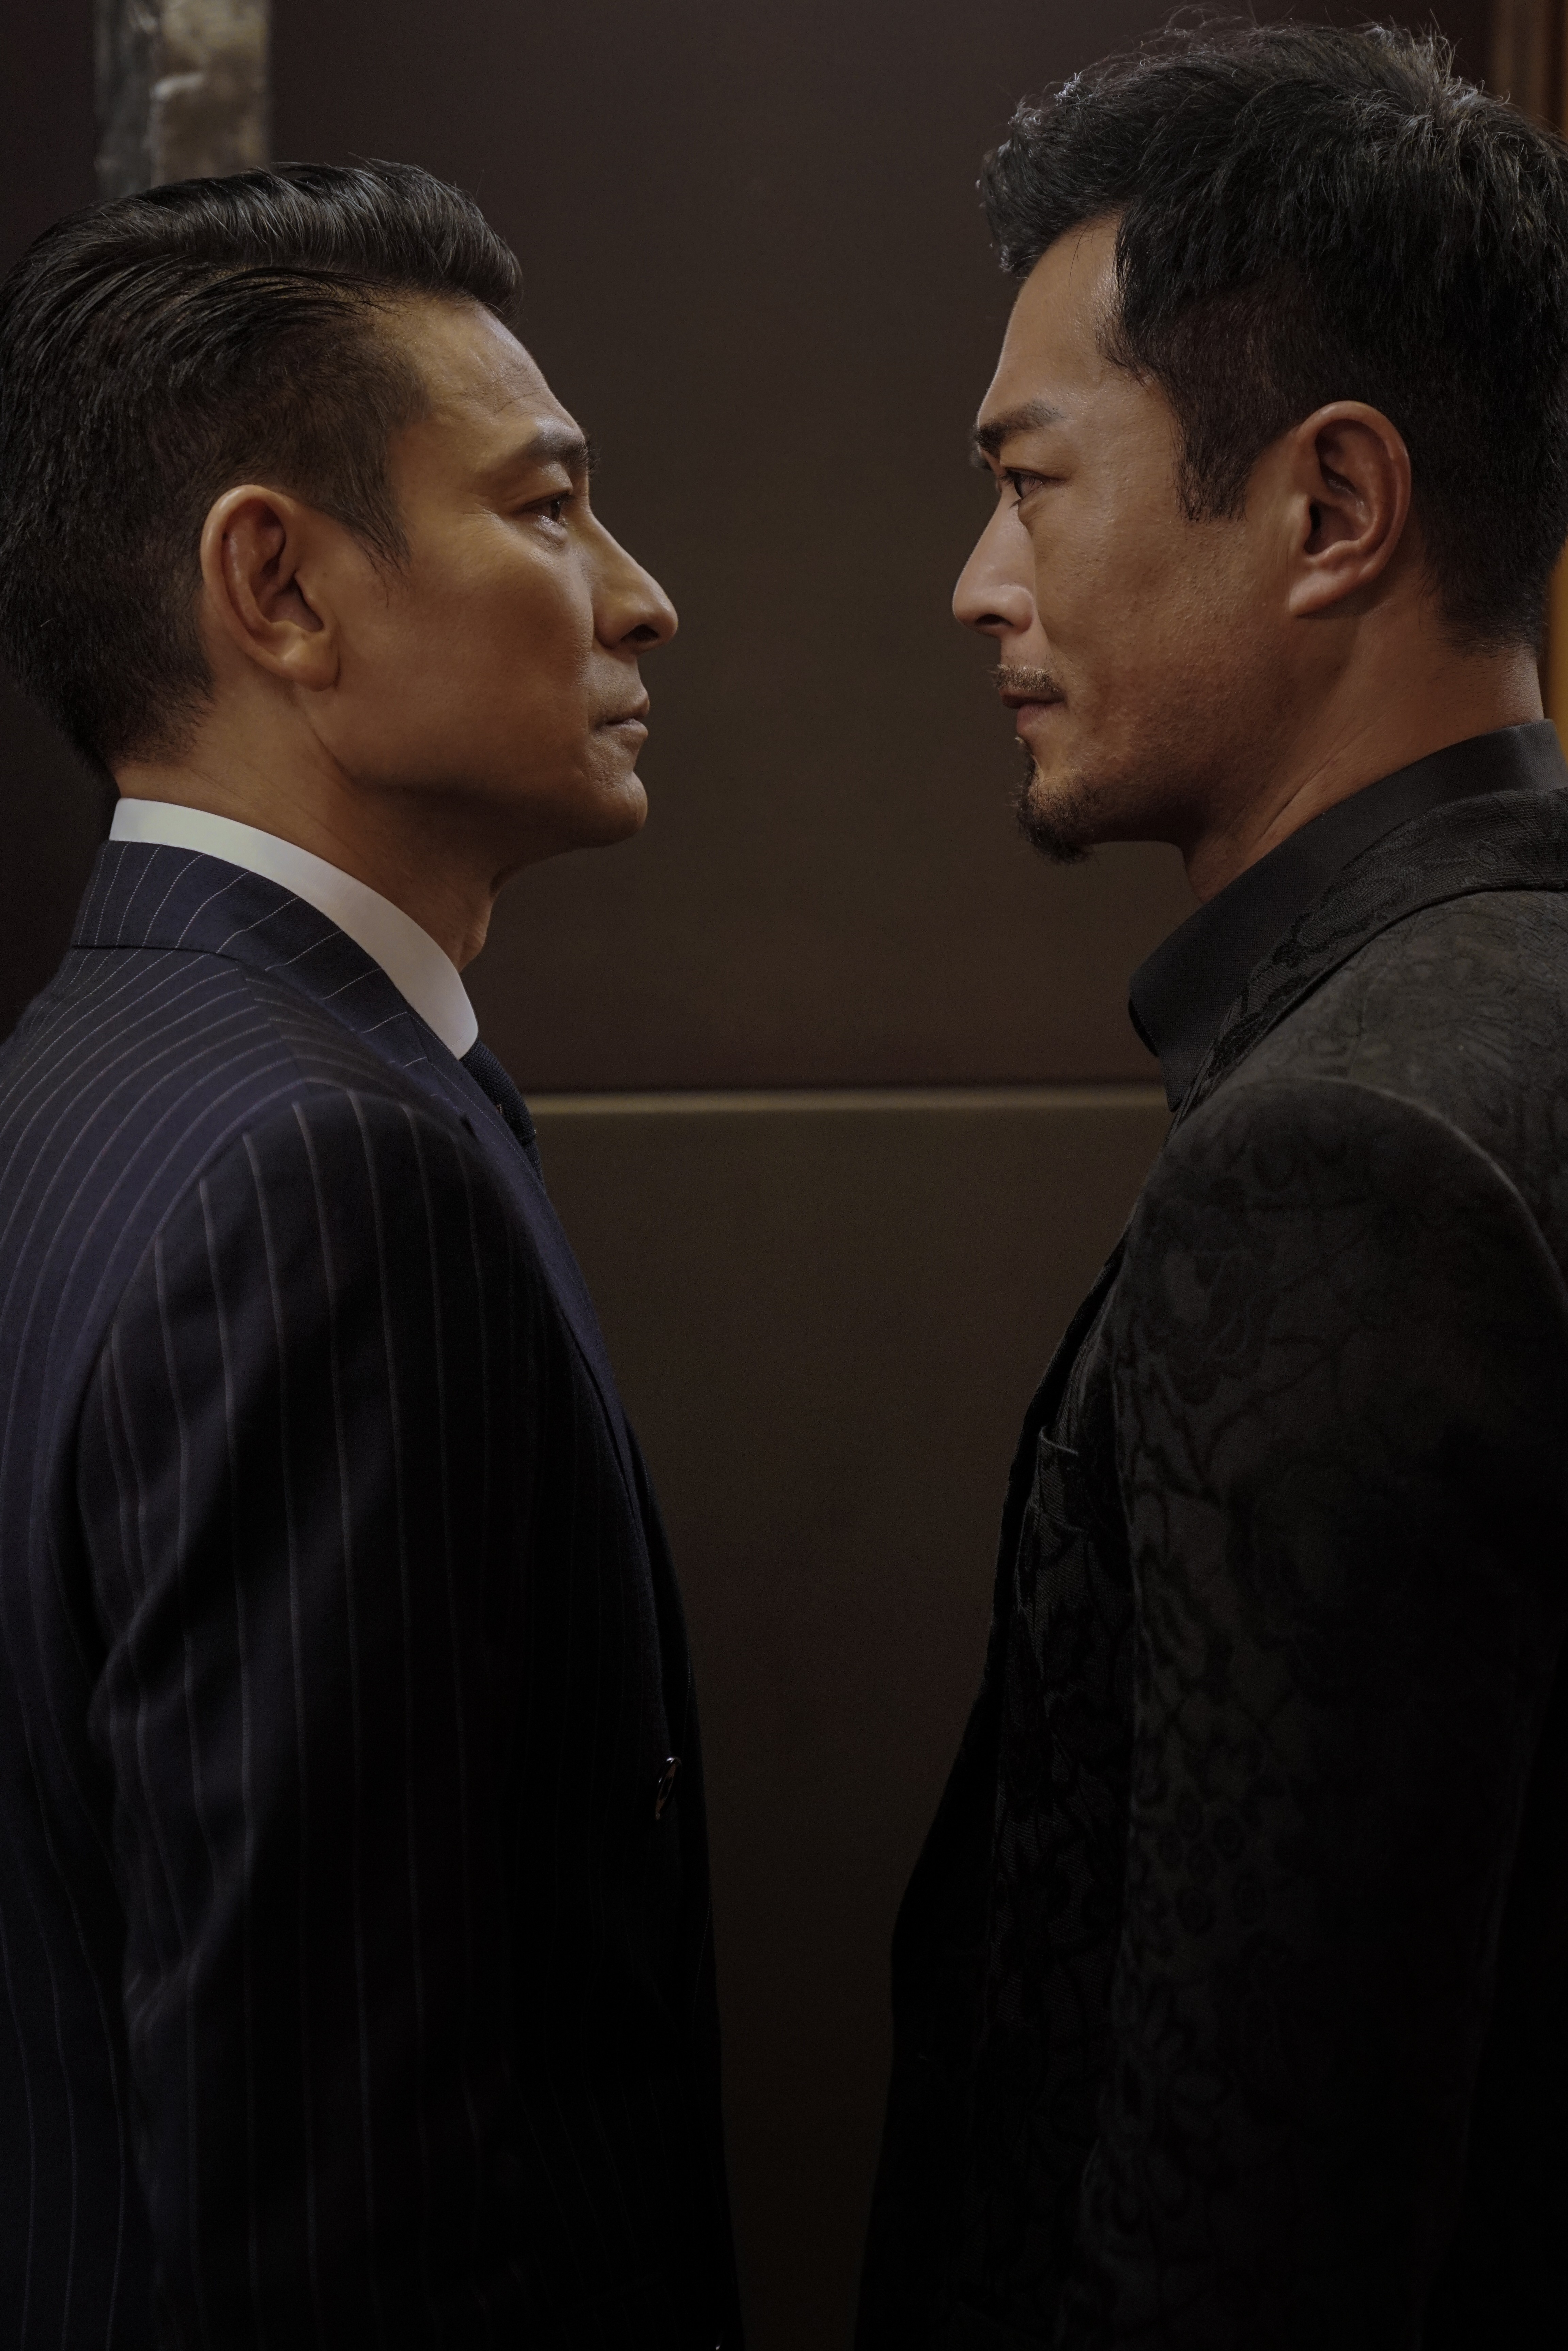 The White Storm 2: Drug Lords film review – Andy Lau, Louis